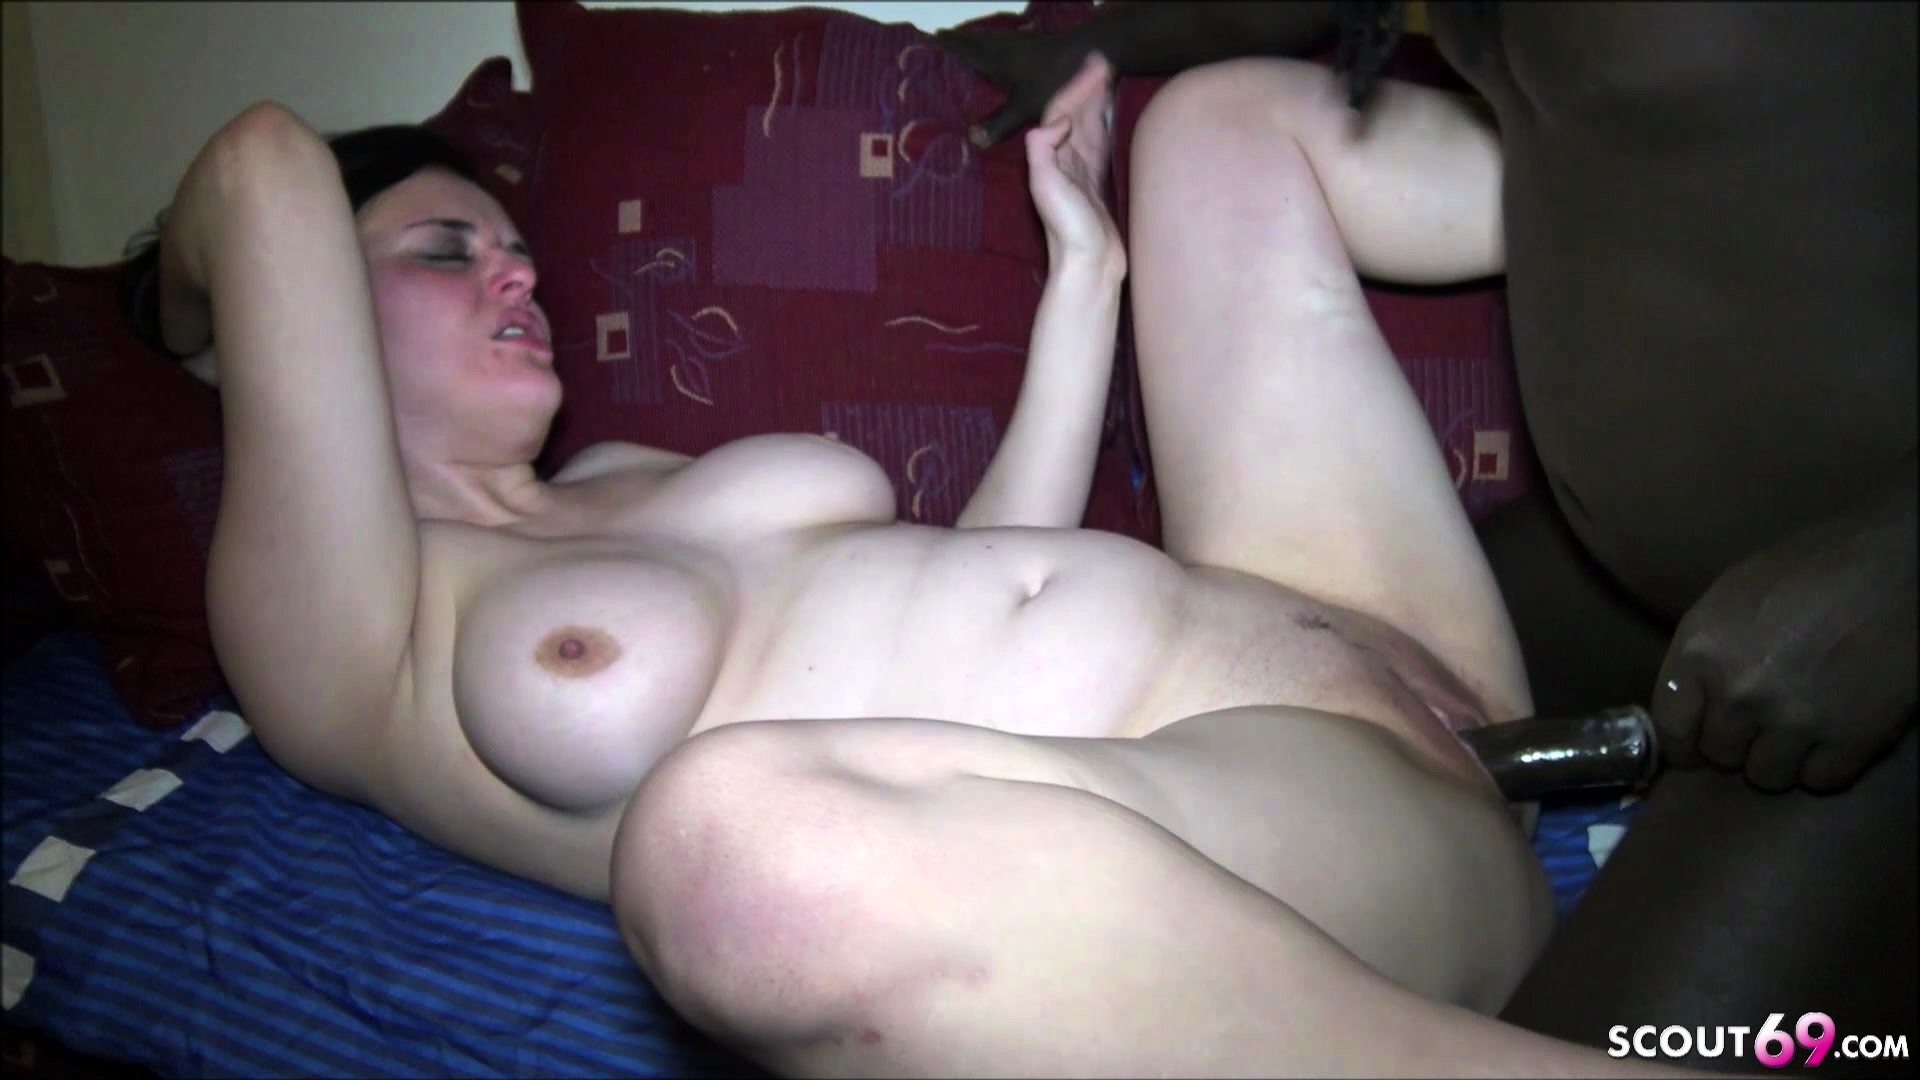 Real Amateur Homemade Cumshot